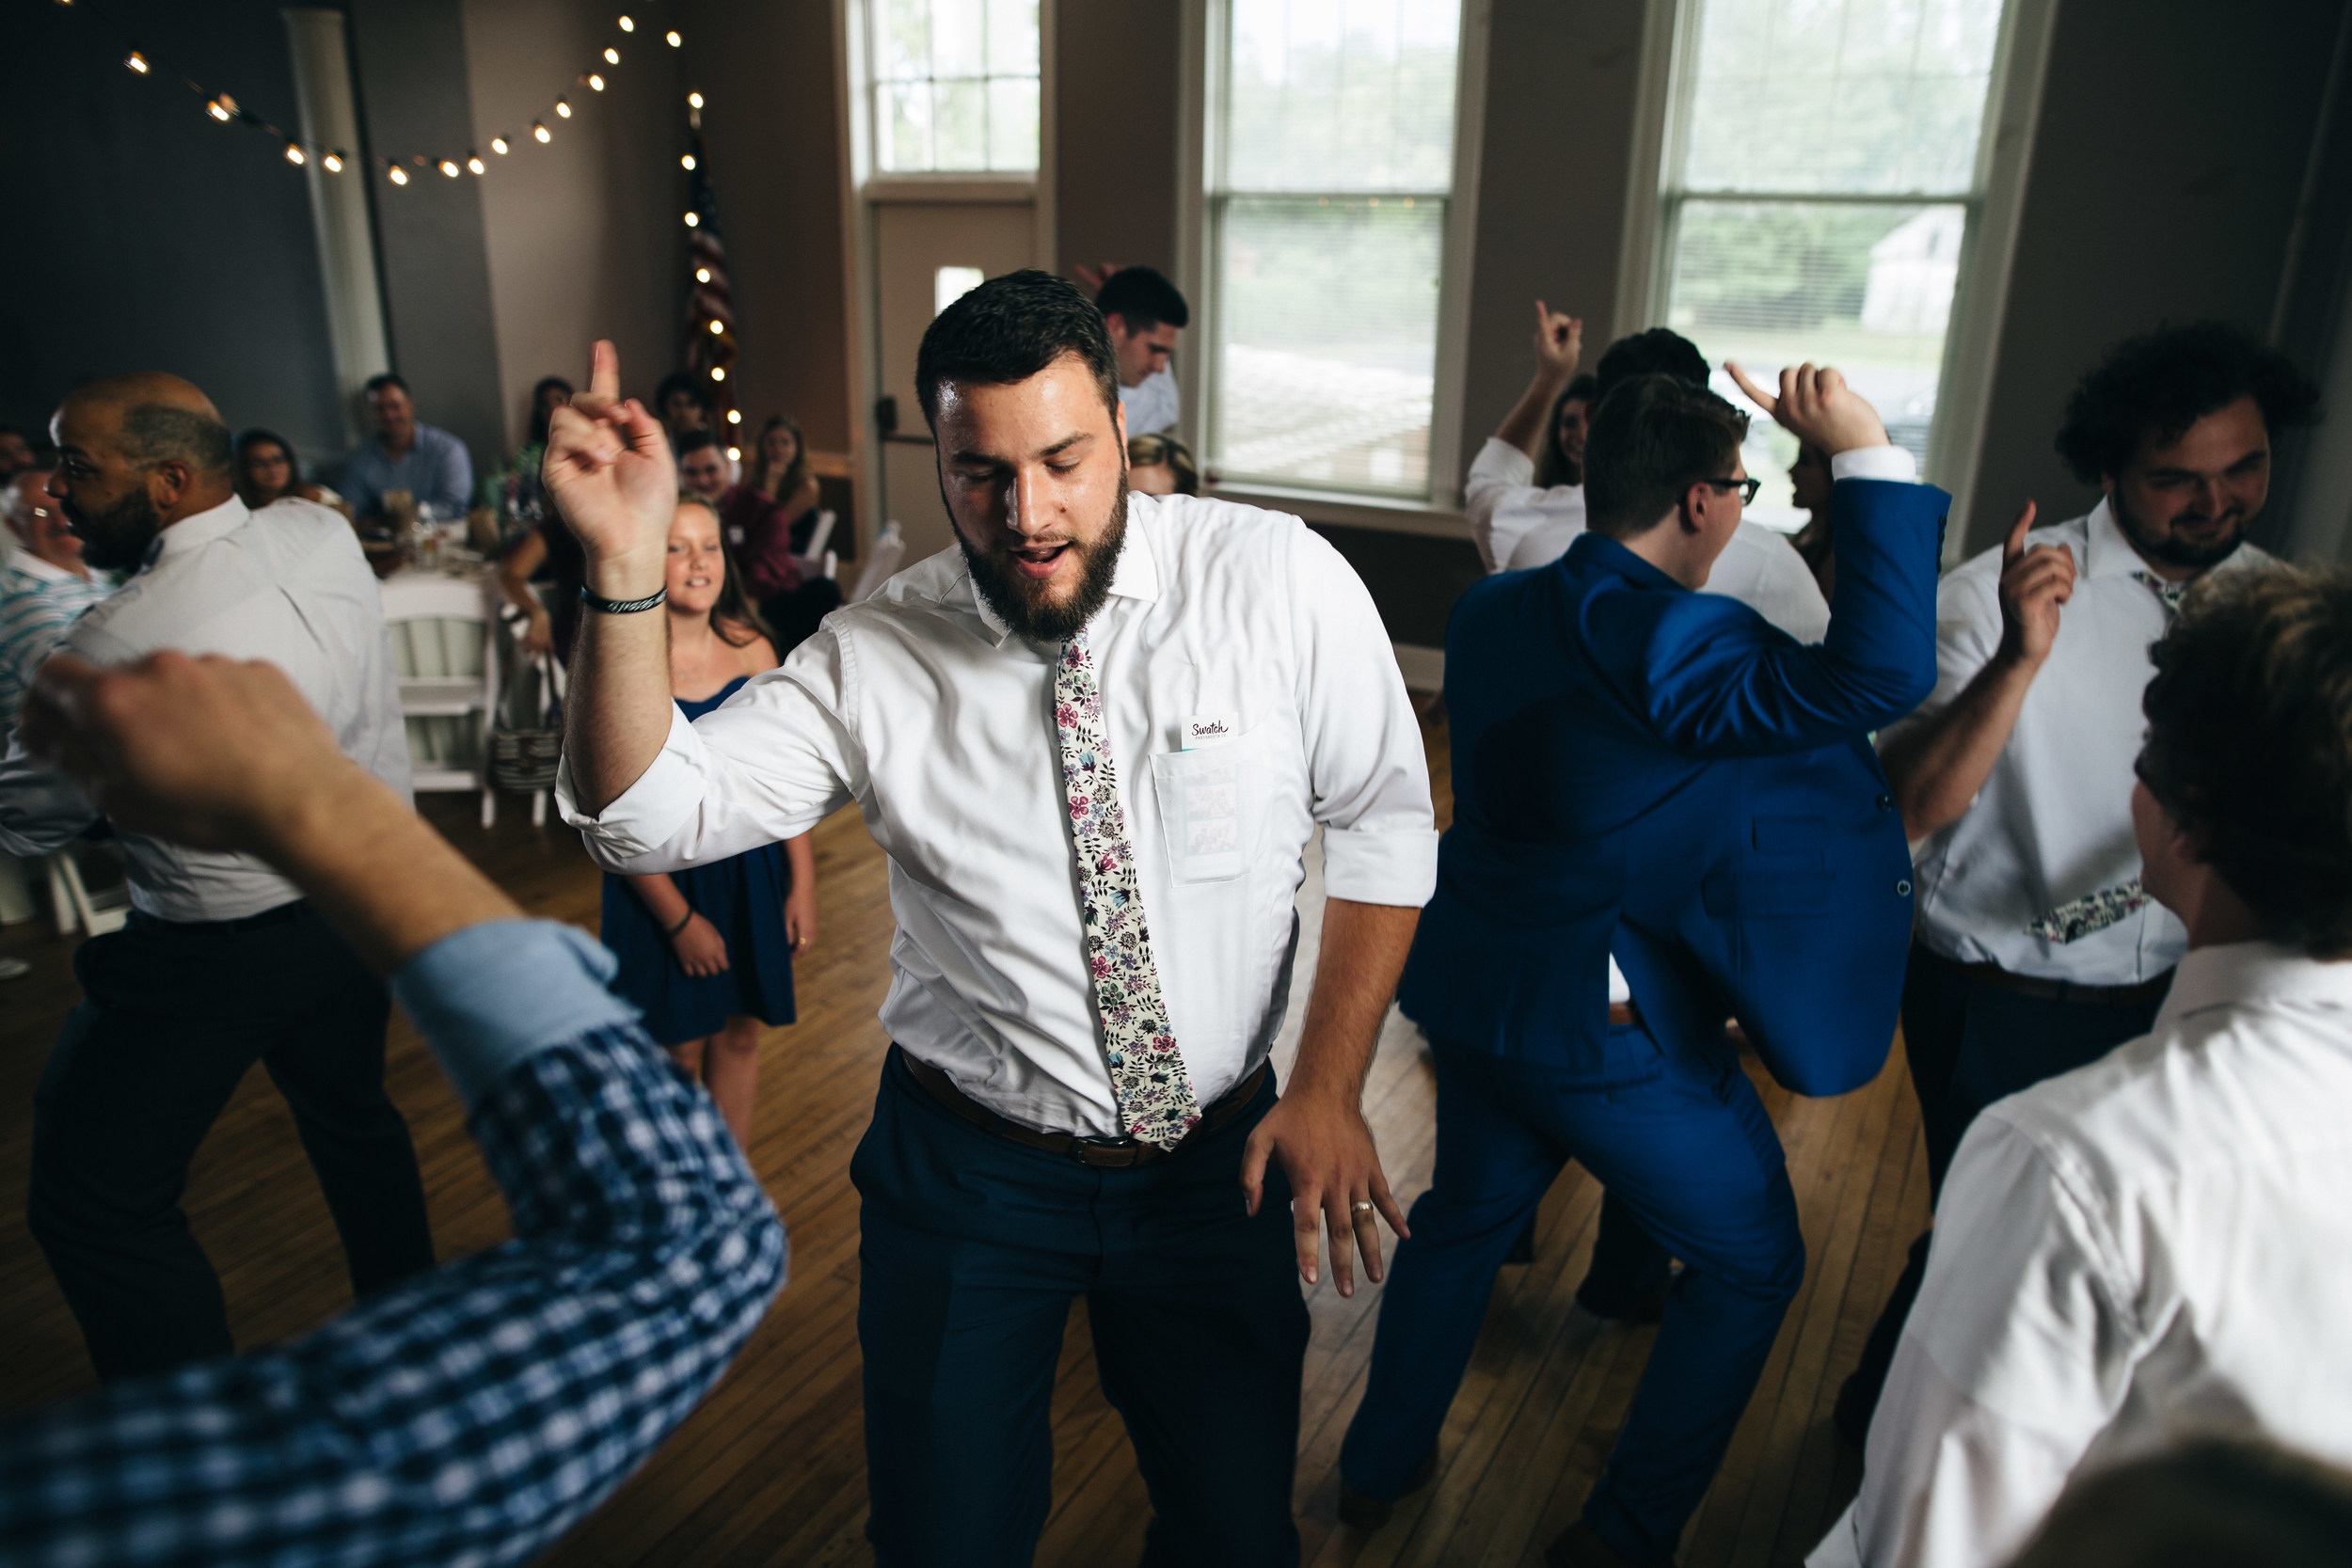 Dancing at Wedding reception to Sounds of Music DJ.